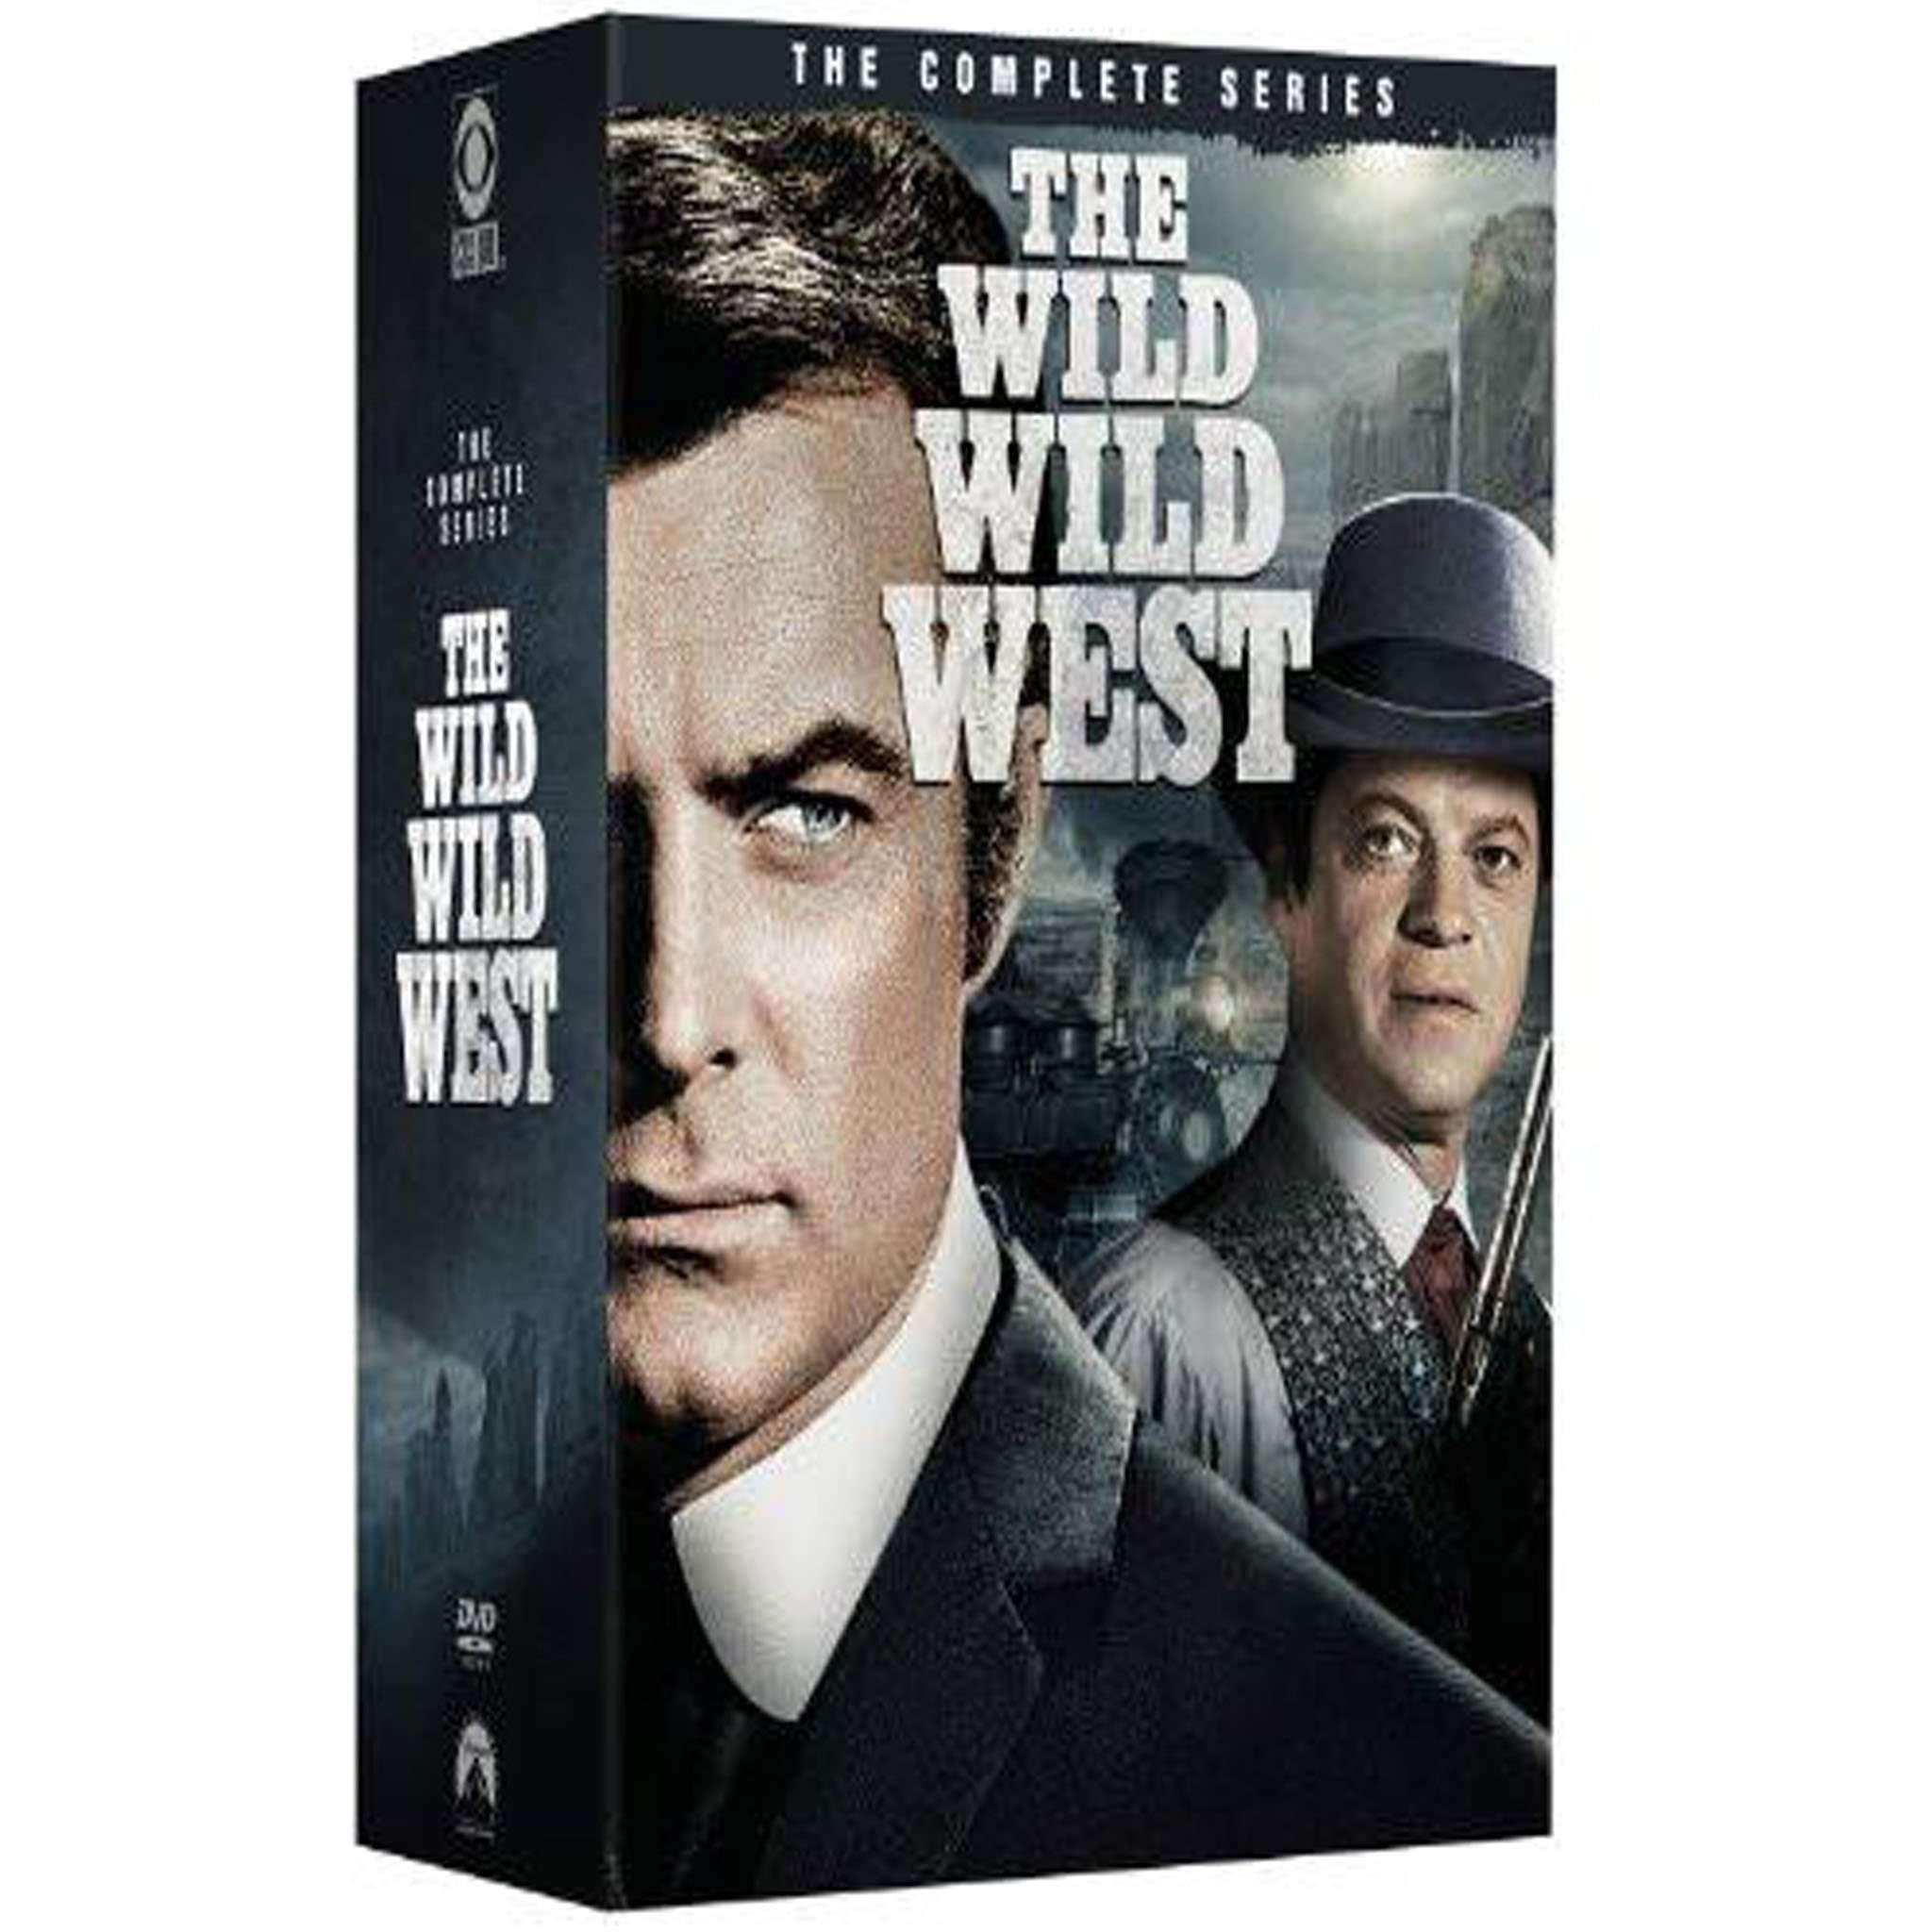 The Wild Wild West DVD Complete Series Box Set Paramount Home Entertainment DVDs & Blu-ray Discs > DVDs > Box Sets